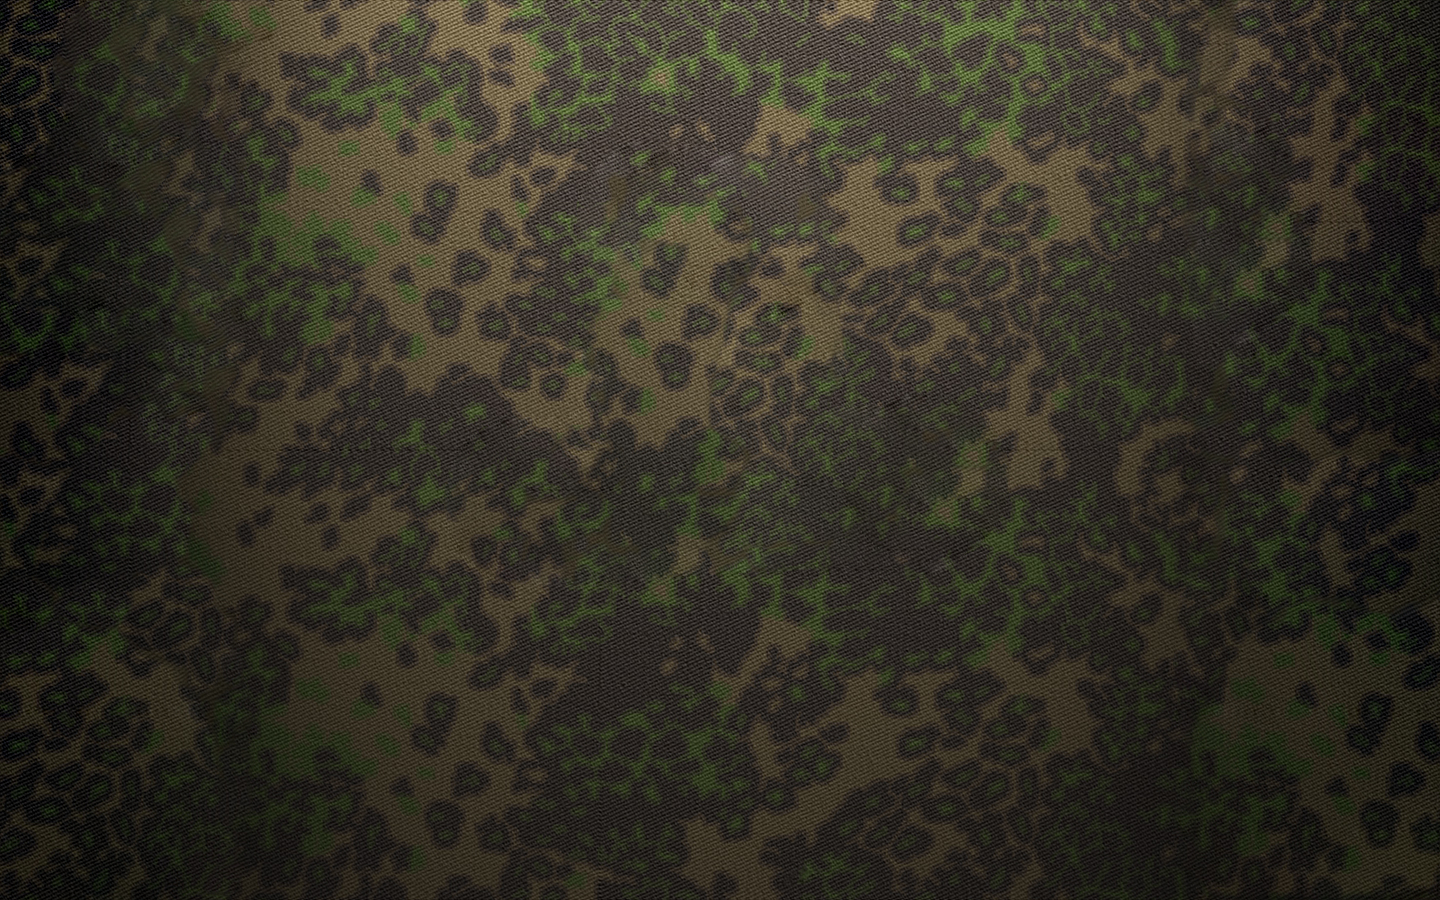 pattern camouflage cammoflage cammo HD Wallpaper